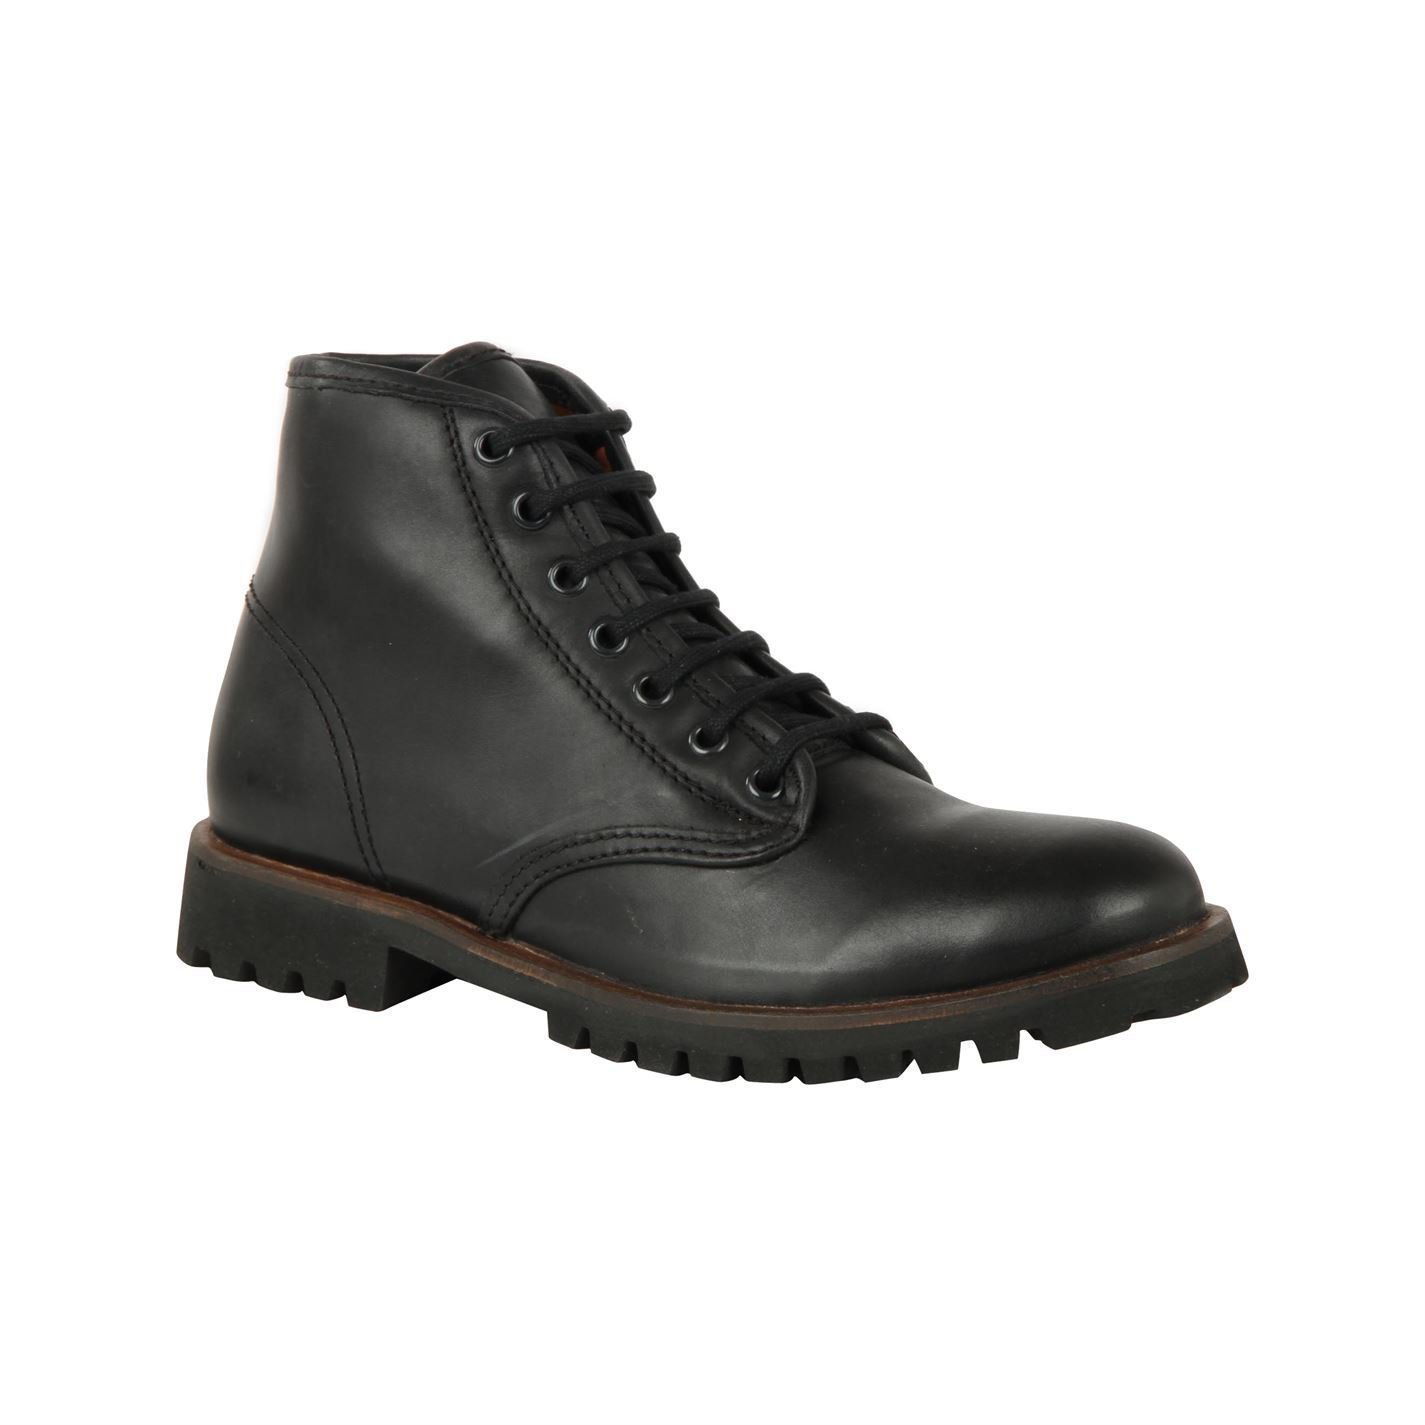 Frank Wright Mens Tidy 7 Eye Boots Platform Heel Gents Lace Up Casual Footwear